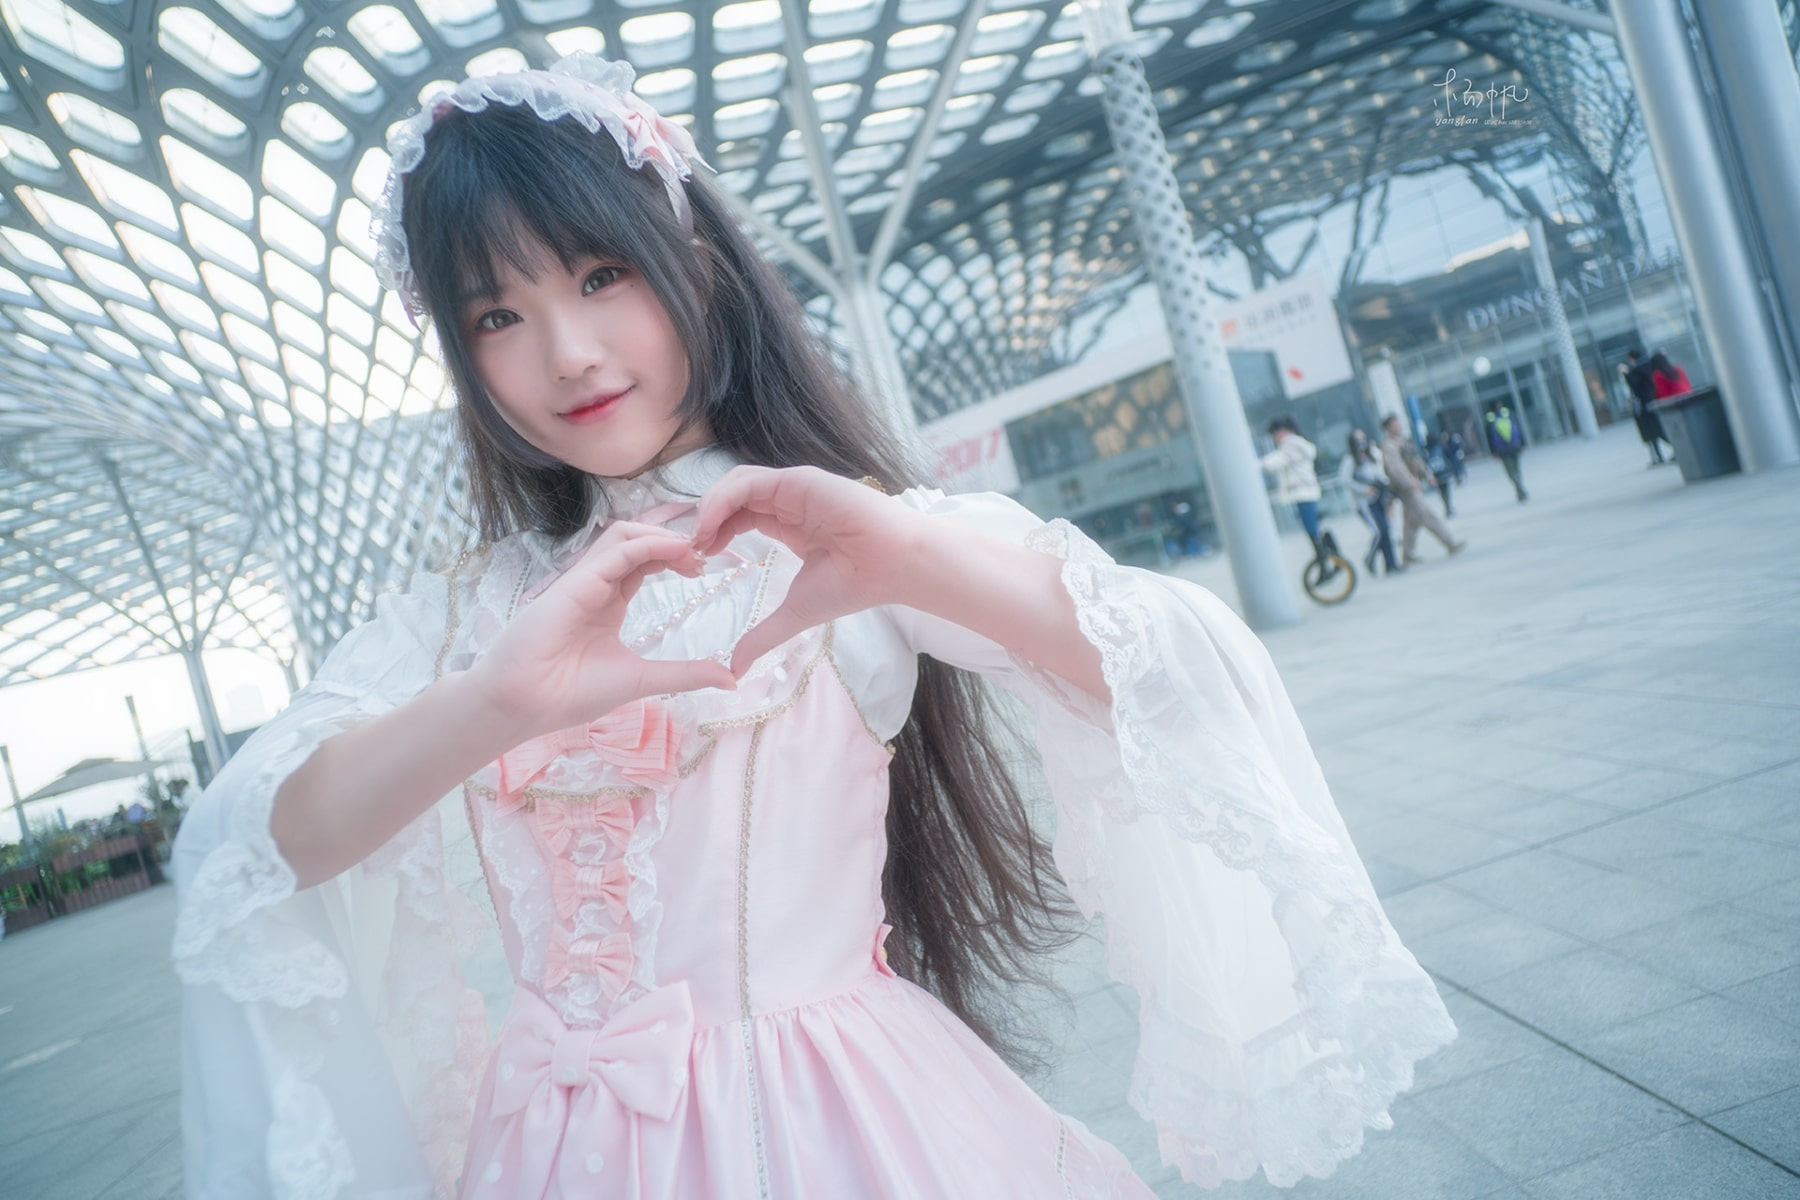 The Japanese Peculiar Subculture of Lolita with a Goth-Loli Focus